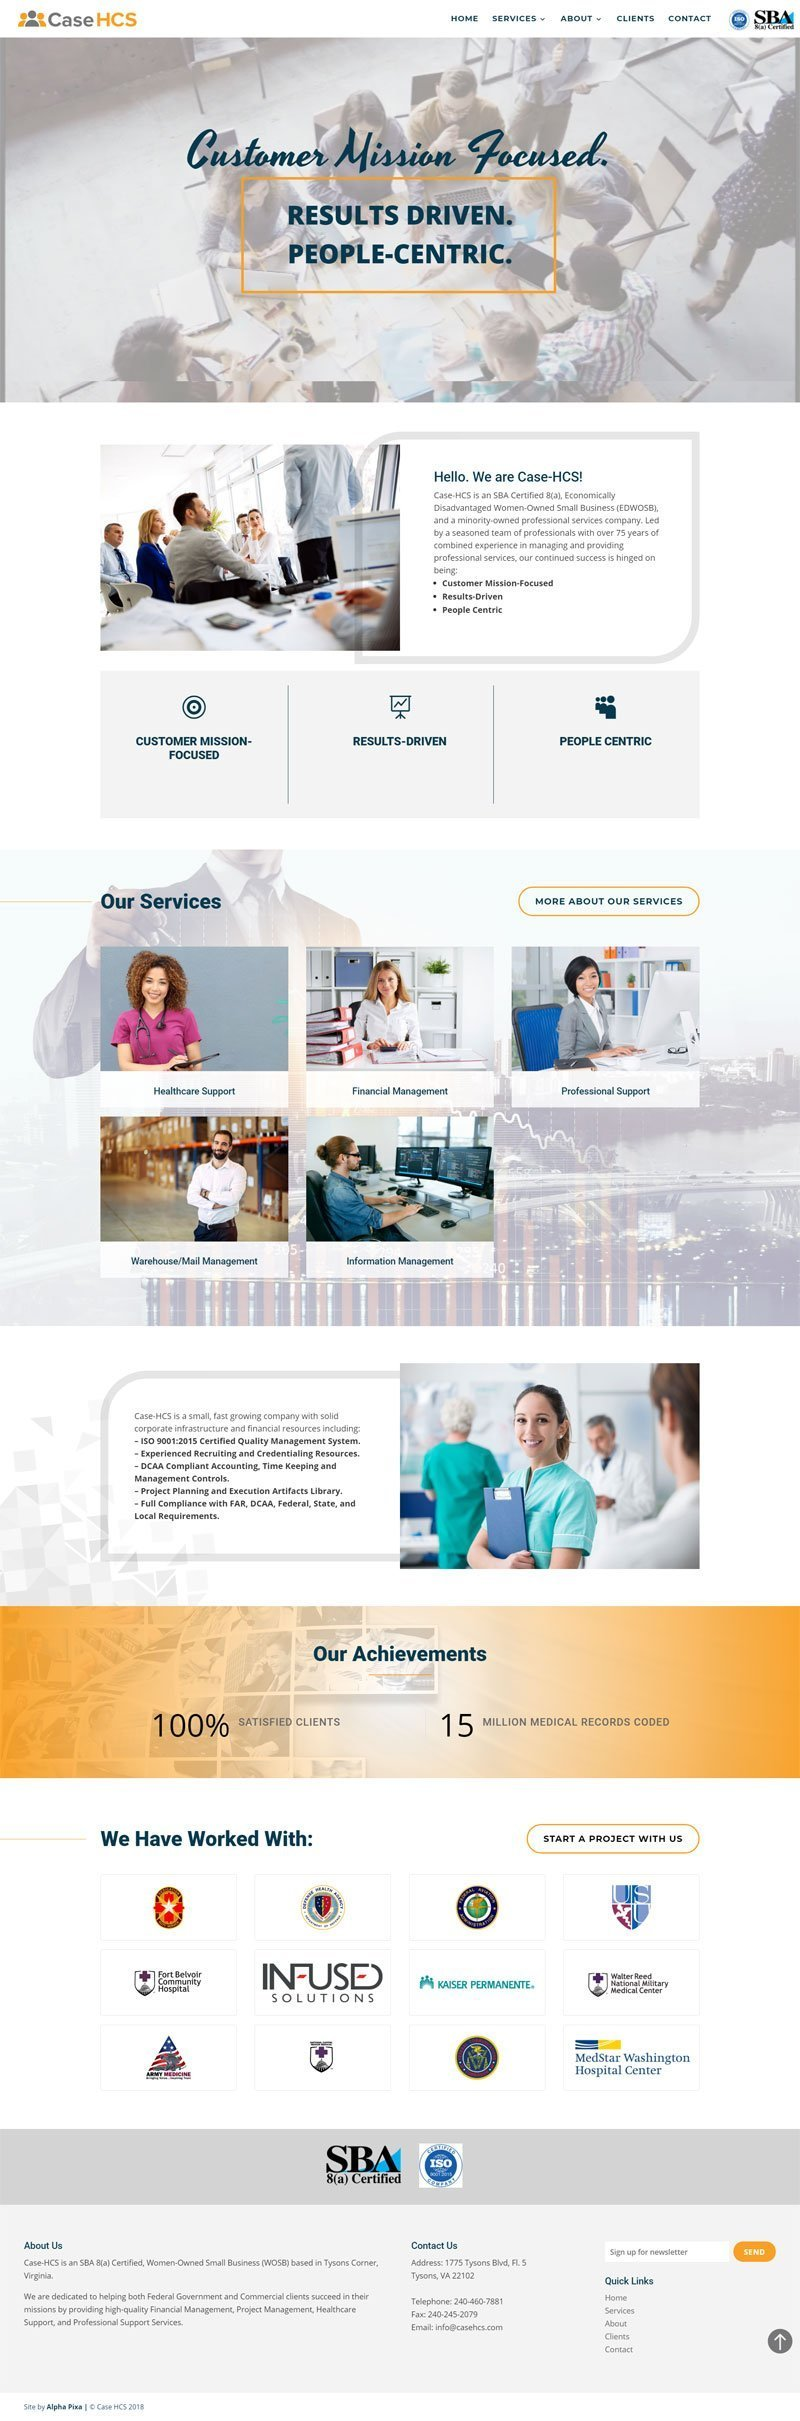 website design for case hcs by alpha pixa